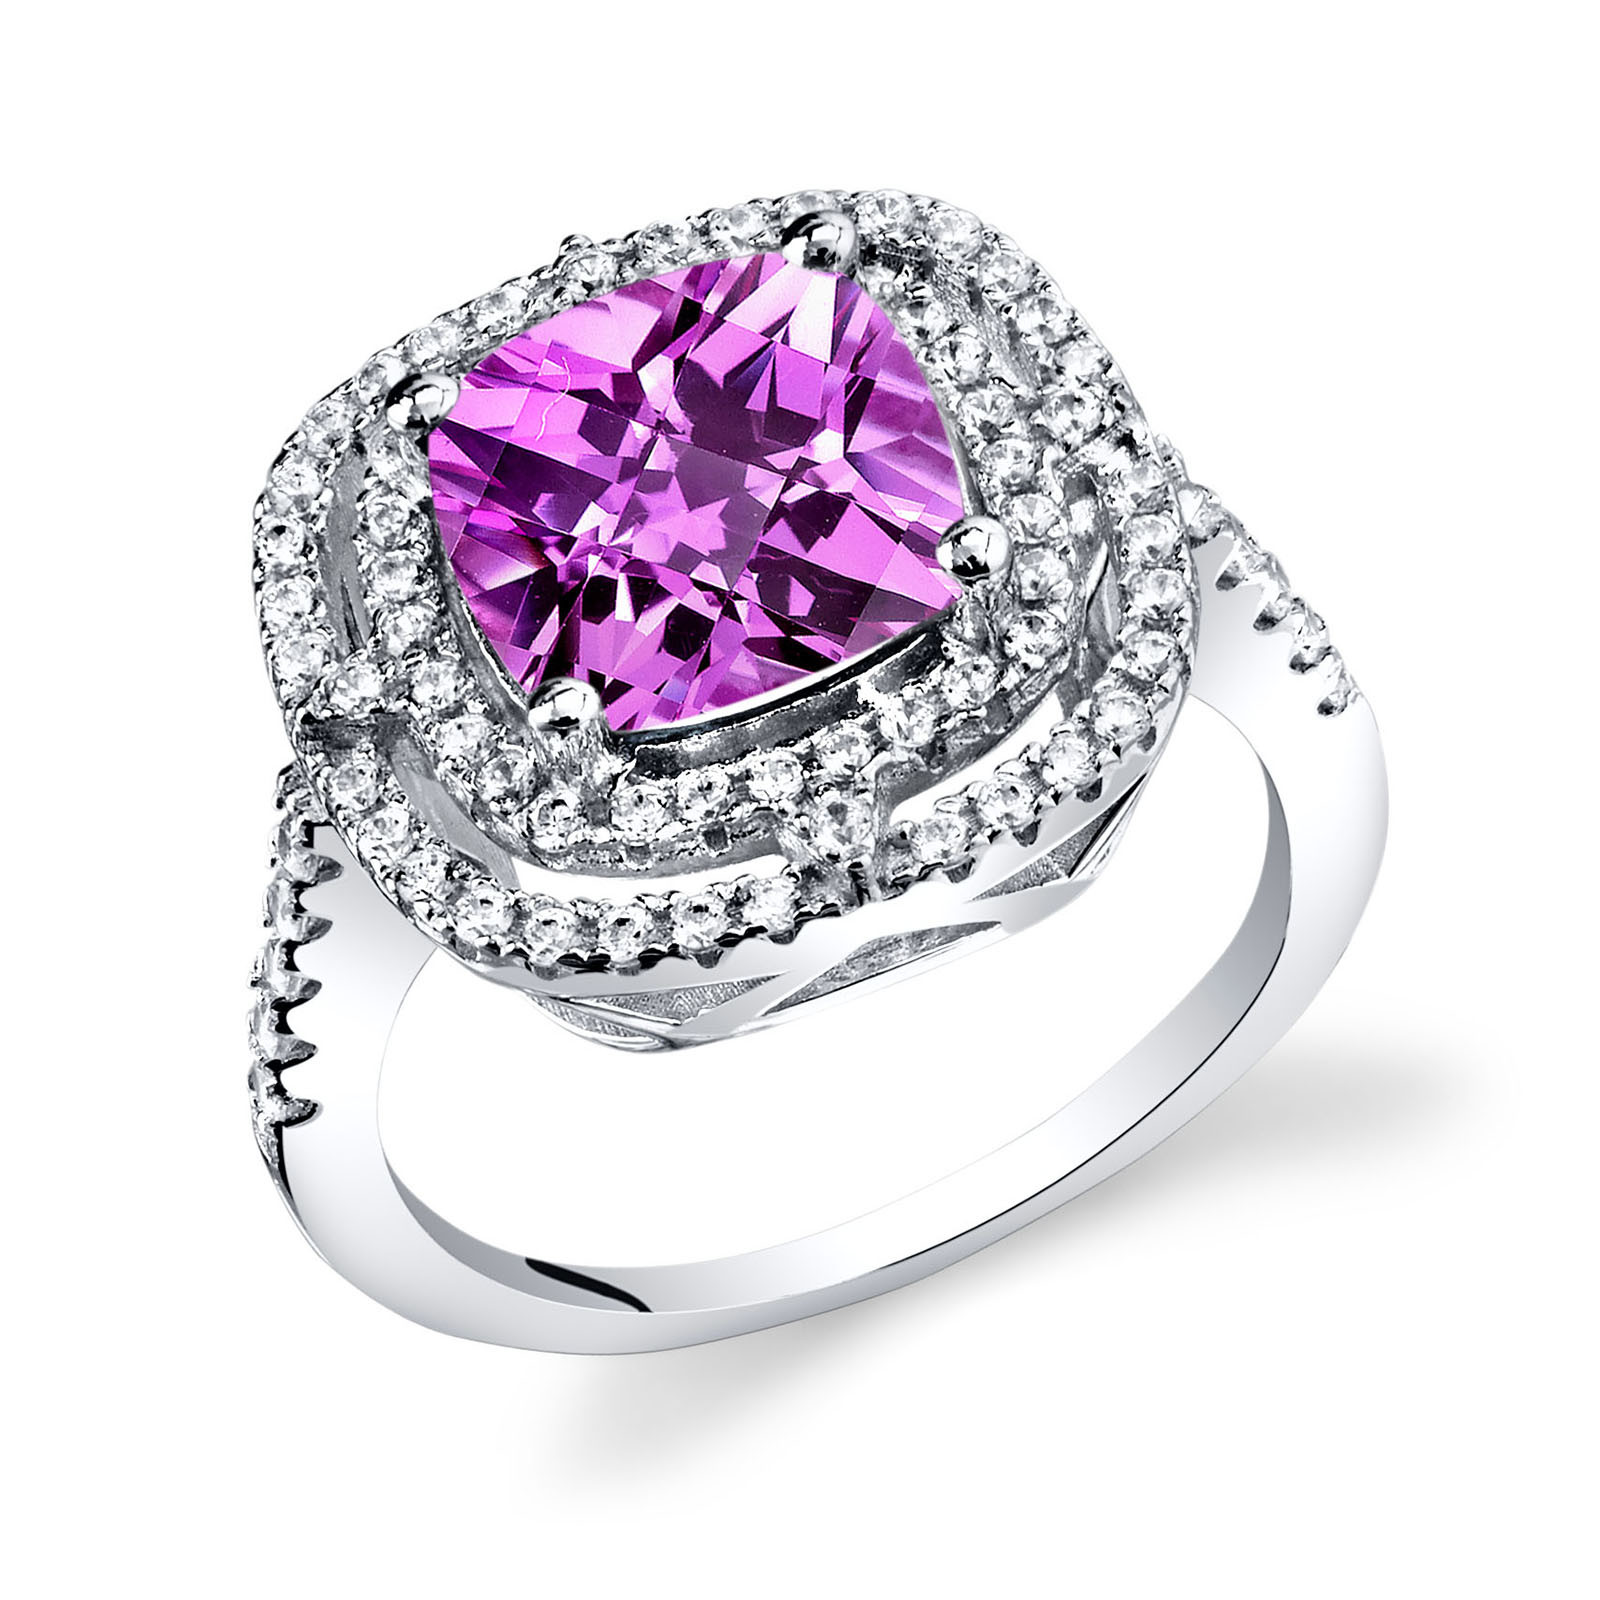 Cushion Cut Pink Sapphire Cz Cocktail Ring In Sterling Silver